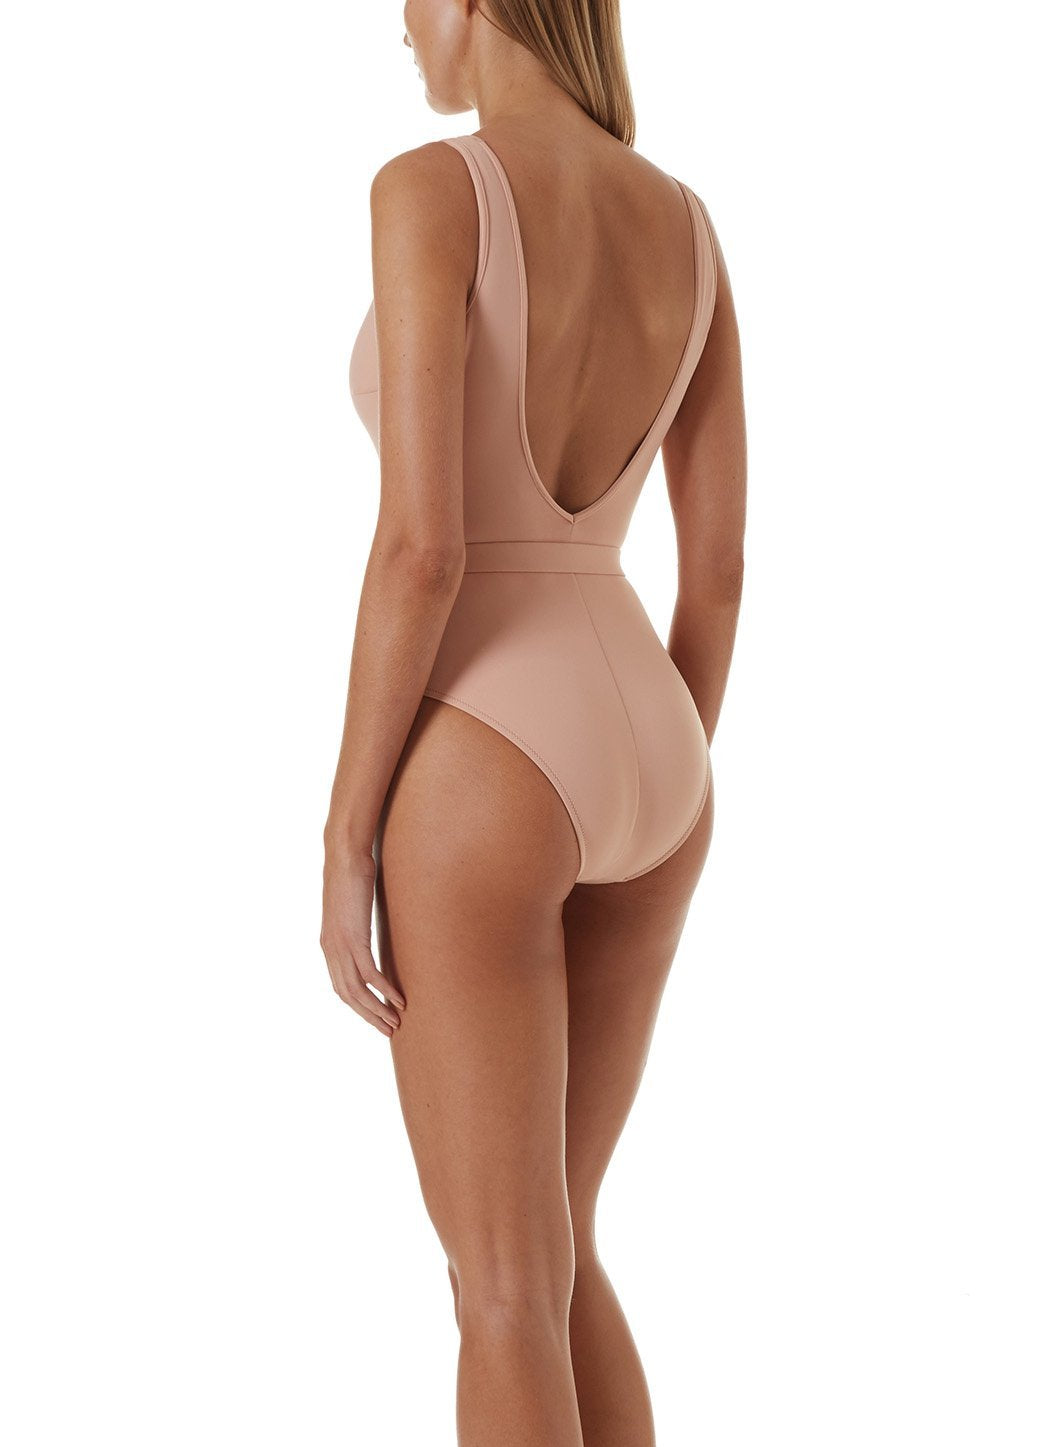 belize tan swimsuit